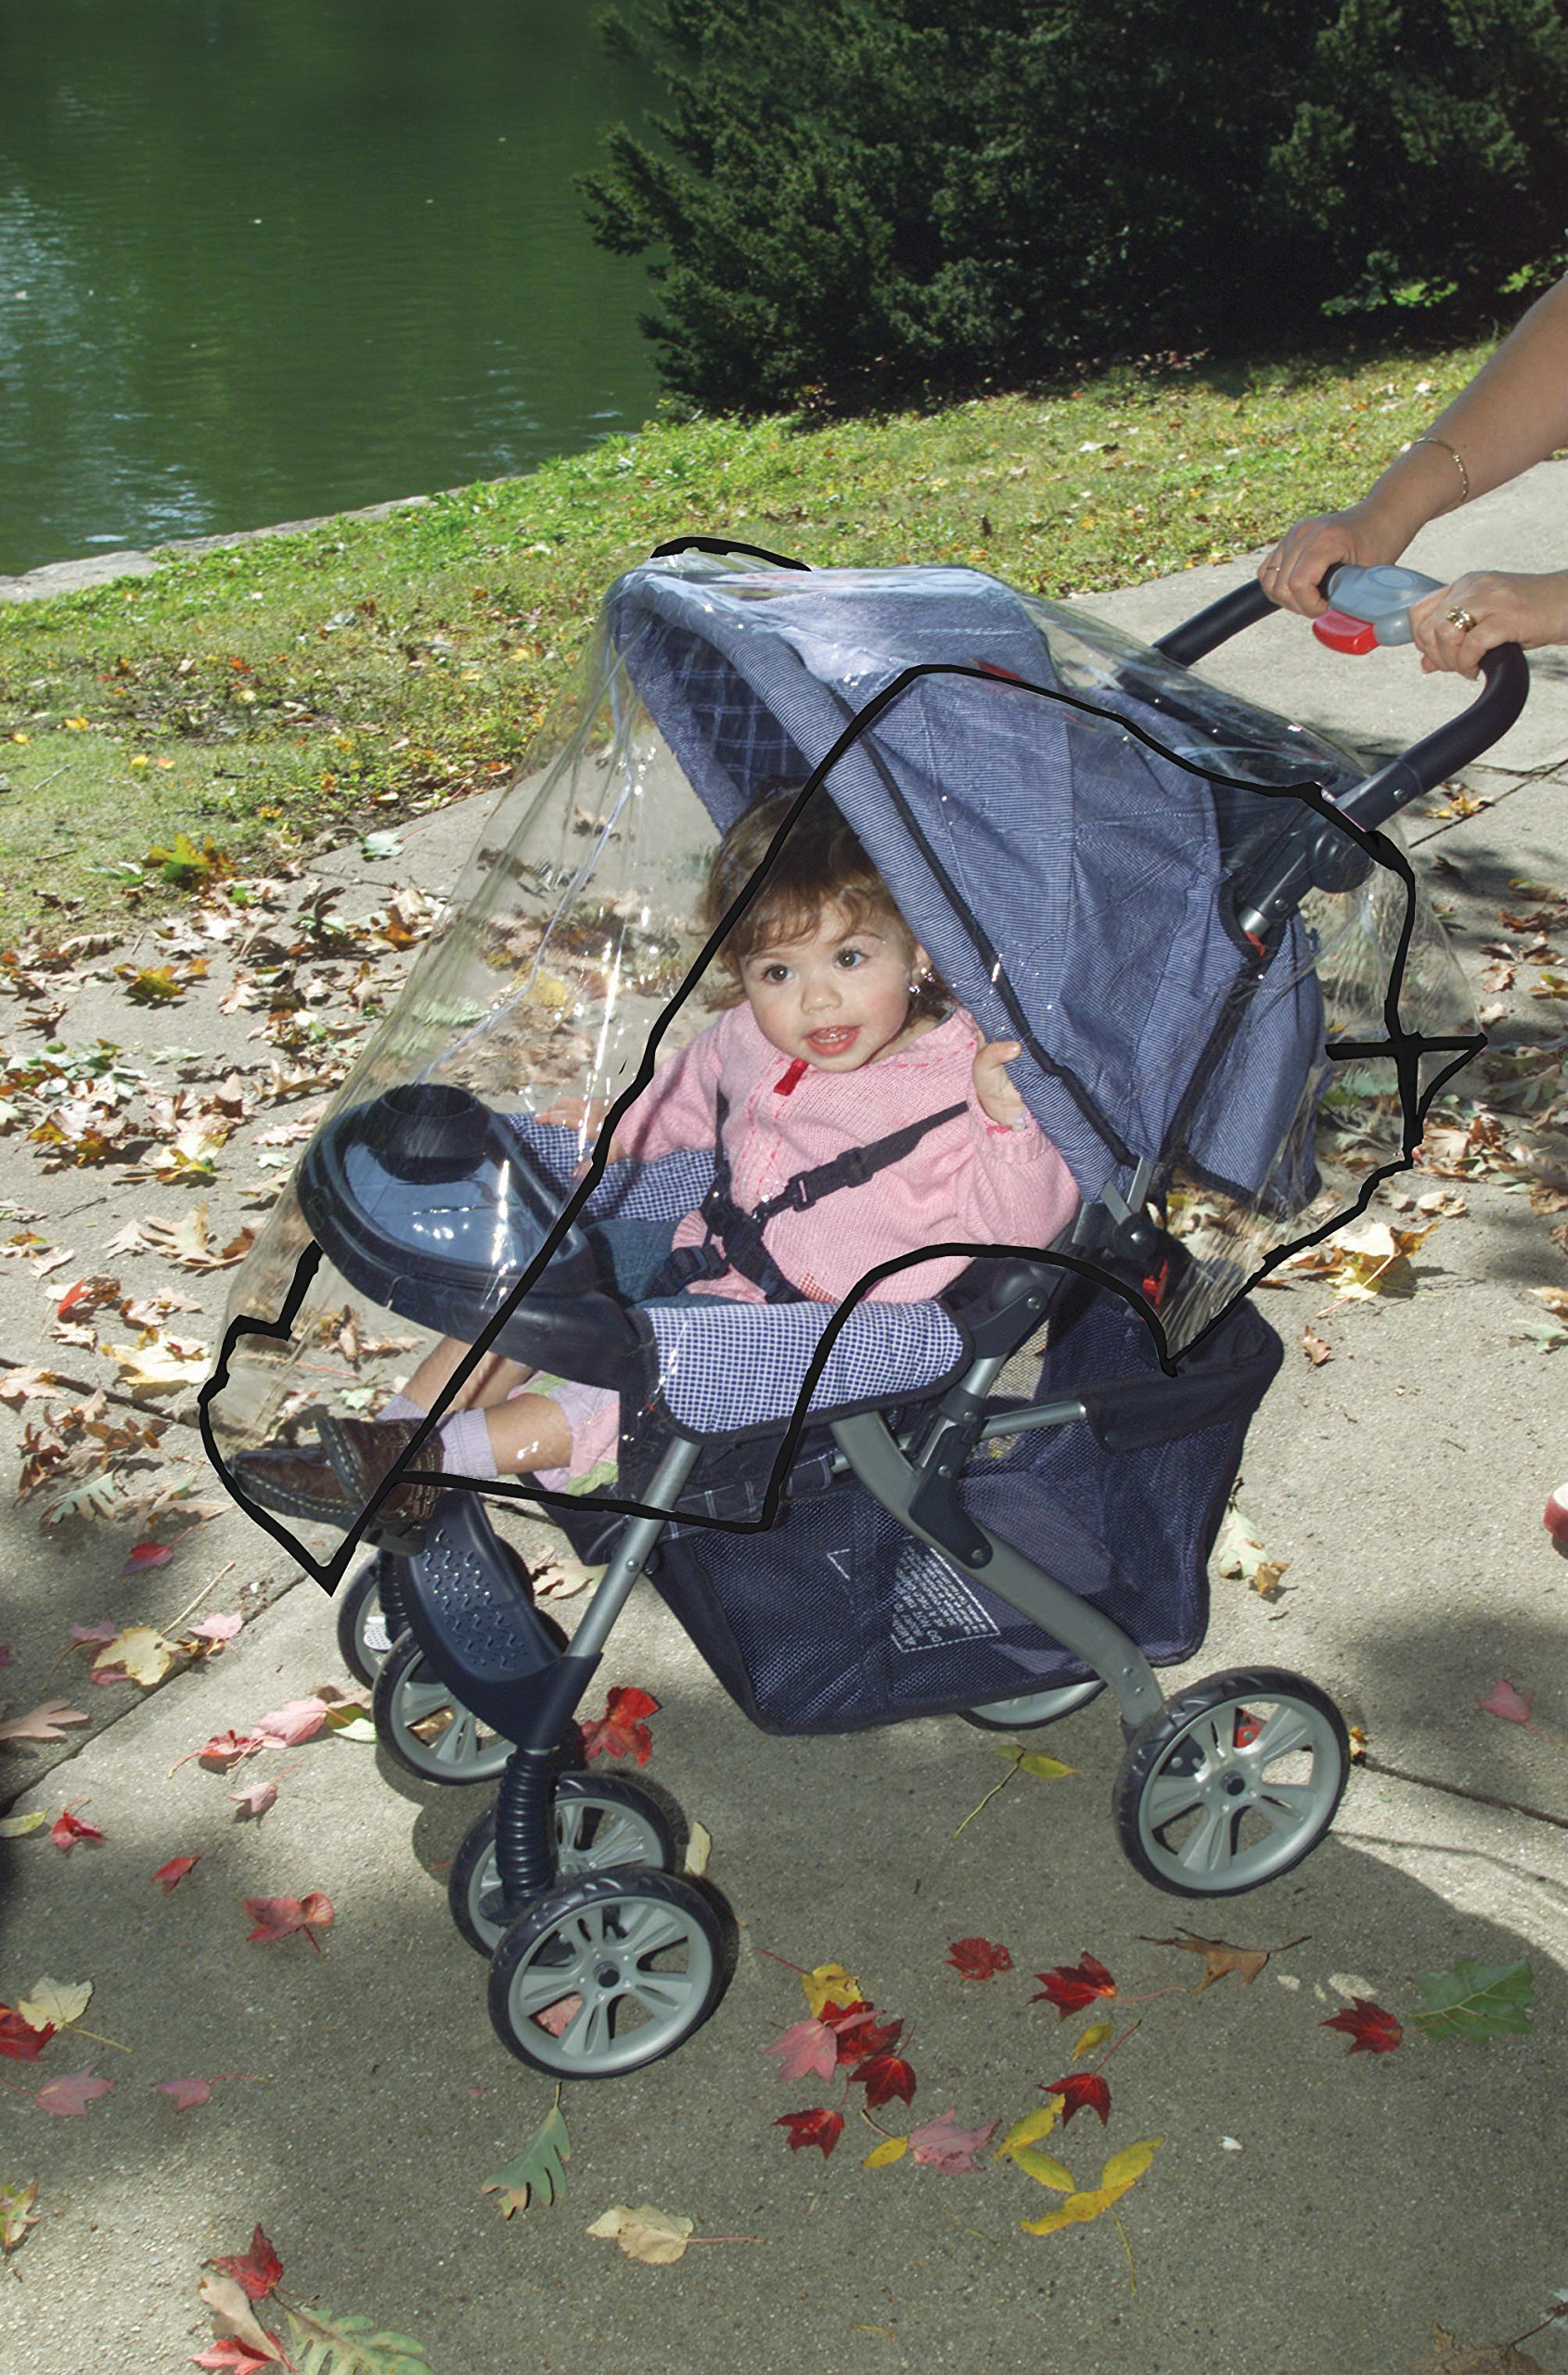 Dreambaby Stroller Weather Shade Dream Baby Transparent so that your child can still see out of the stroller clearly Made of a flexible plastic which is easy to wipe clean and dry off Fits most standard sized hooded strollers 3